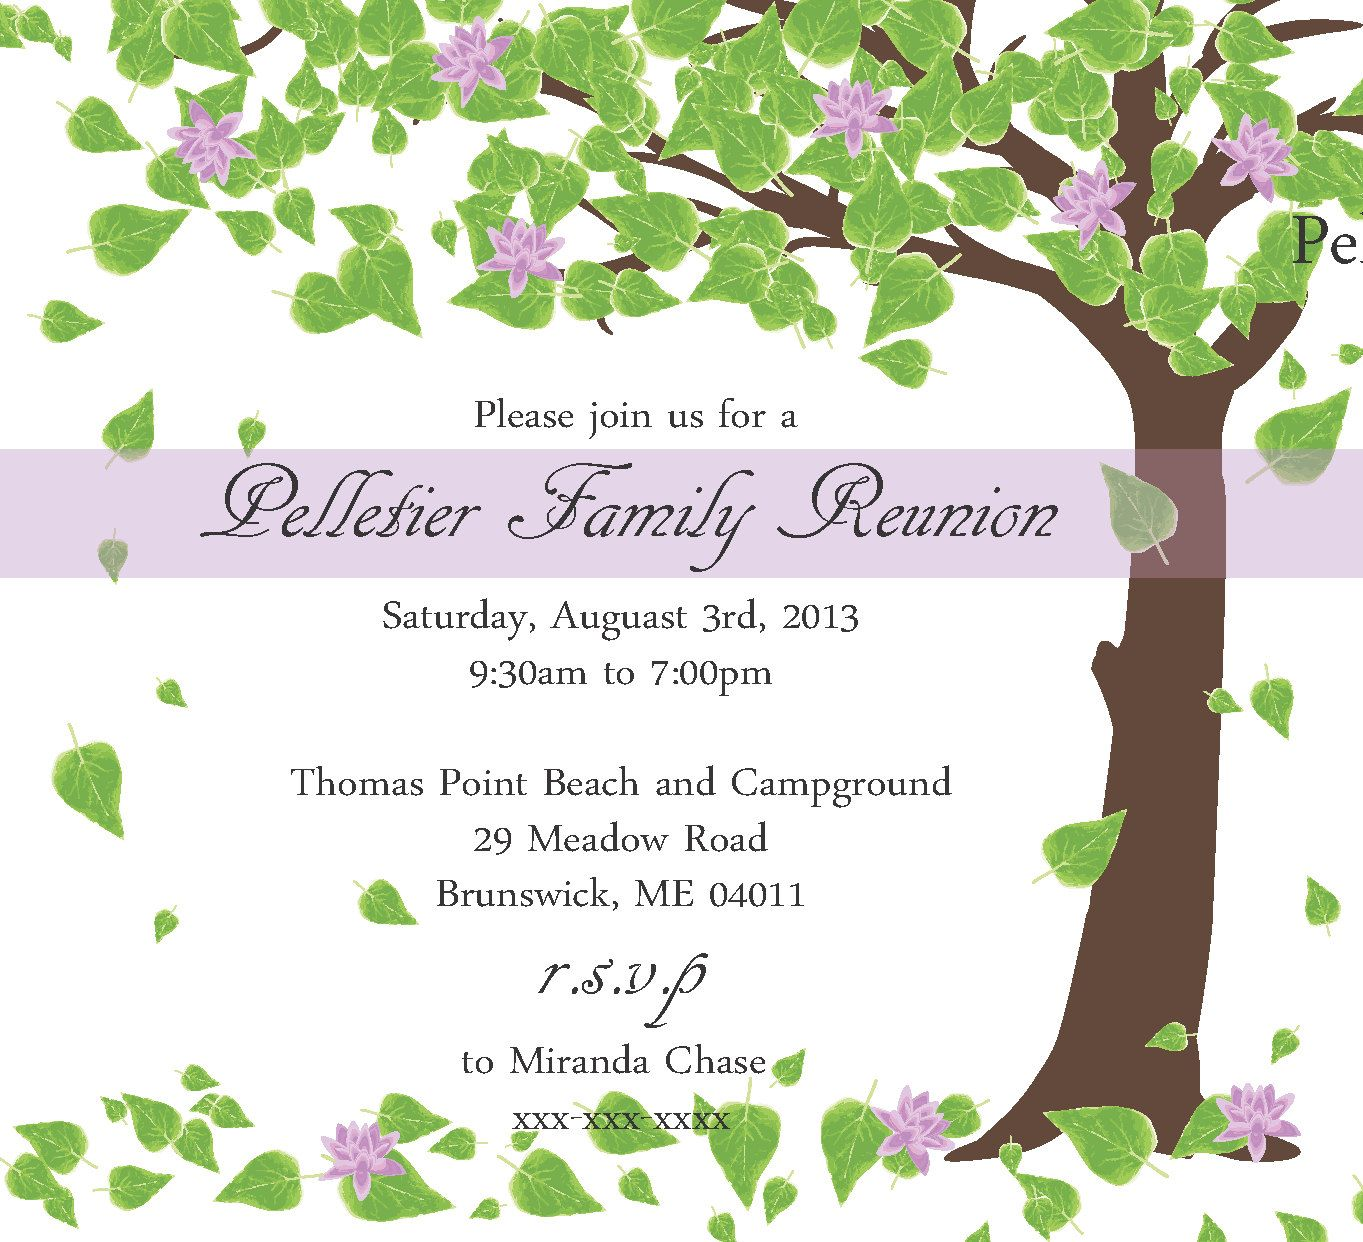 Family Reunion Invitation By Littlebopress On Etsy  Family